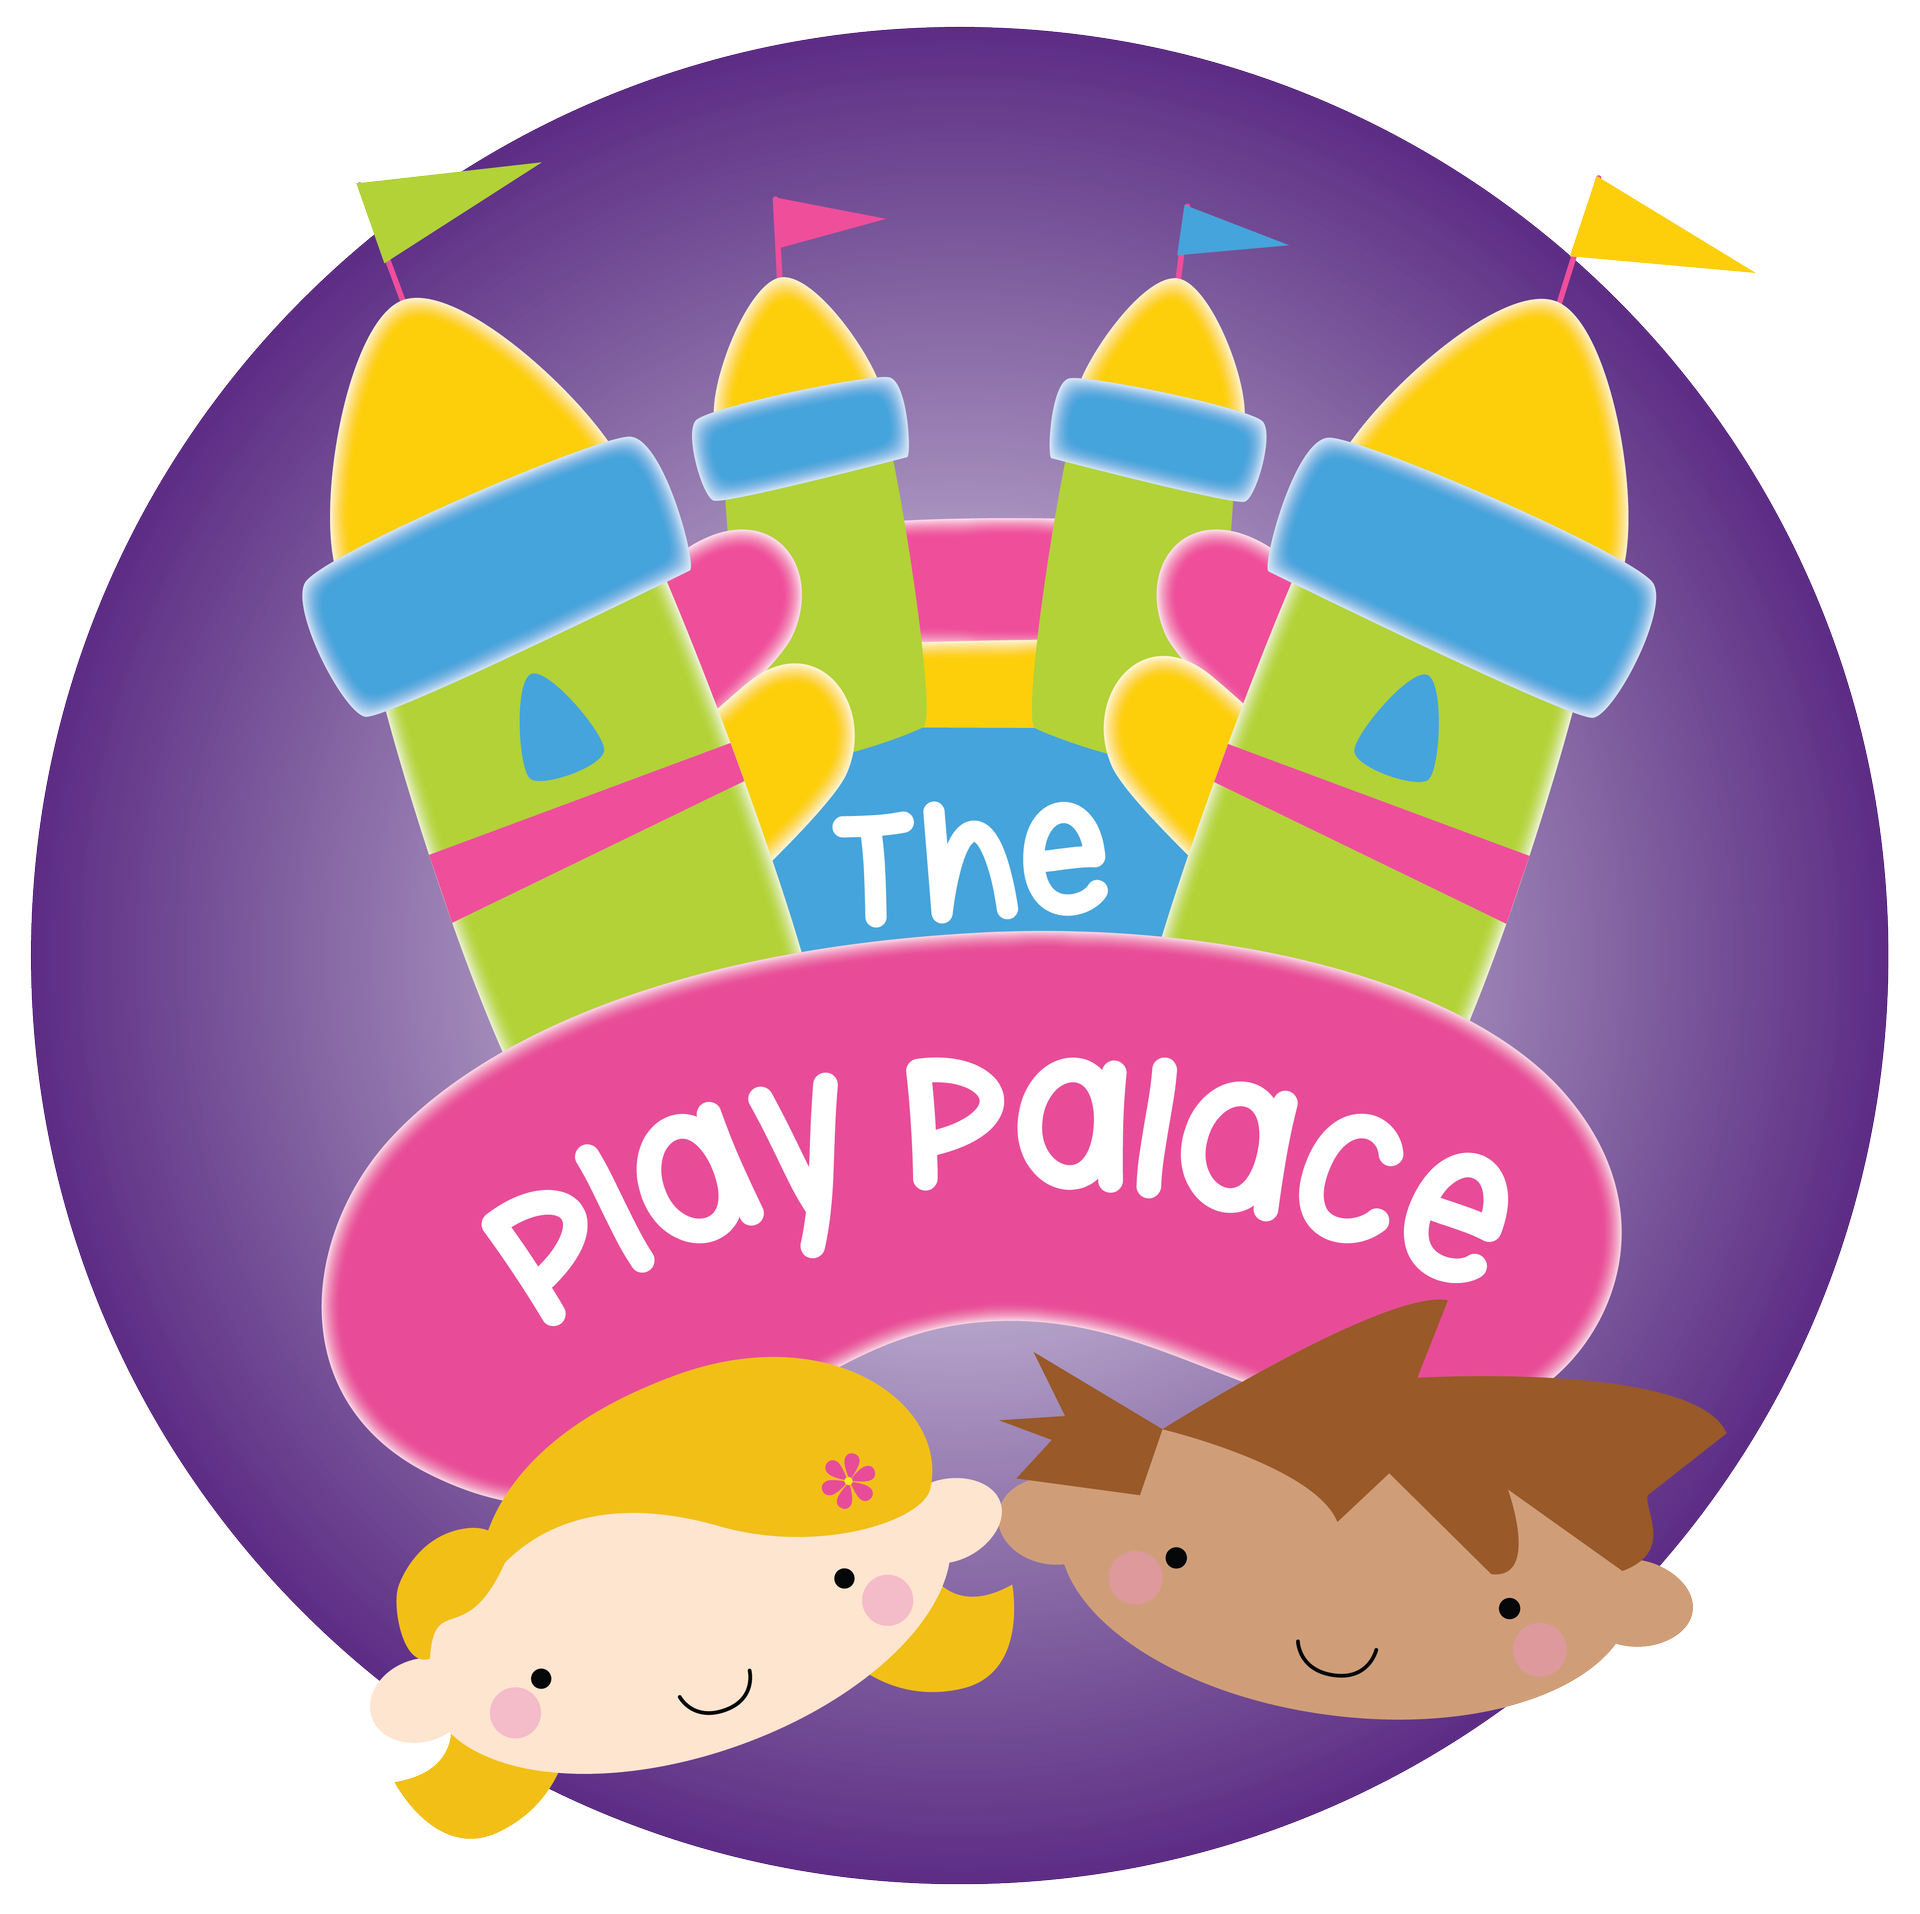 Palace clipart castle welsh. Bouncy soft play hire